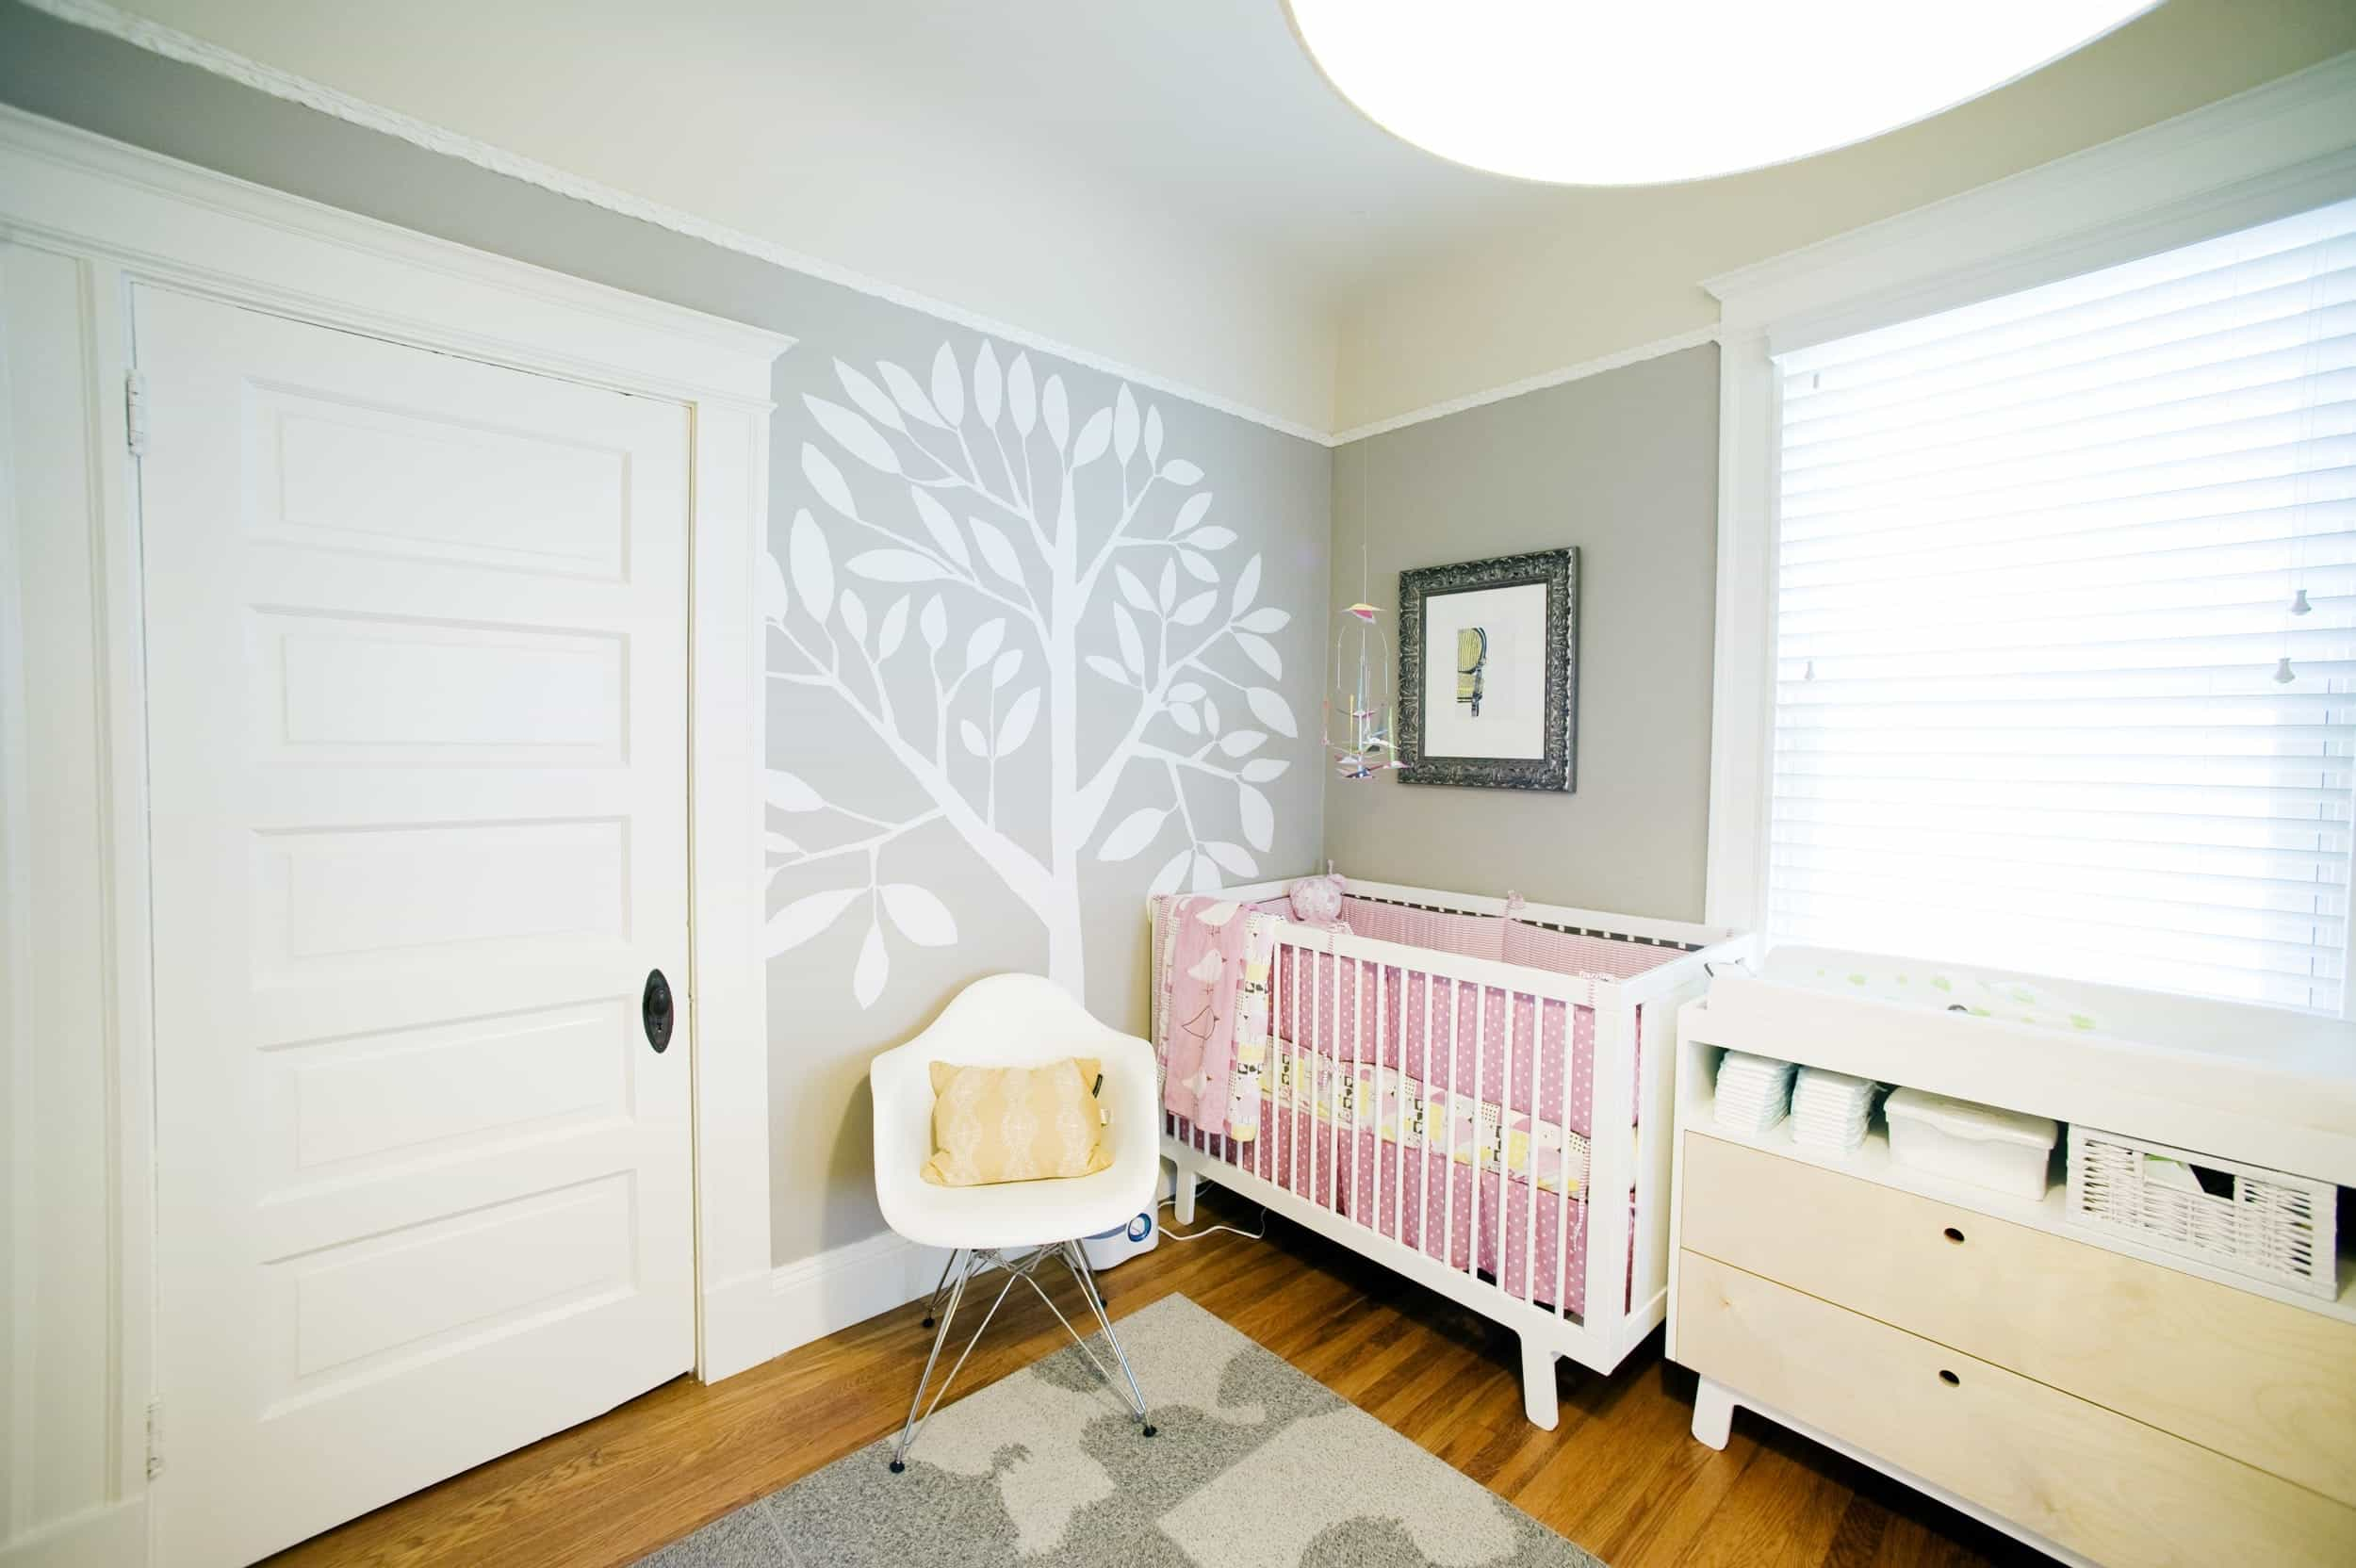 Modern Nursery With Adorable Girl Centric Decor (Image 20 of 33)